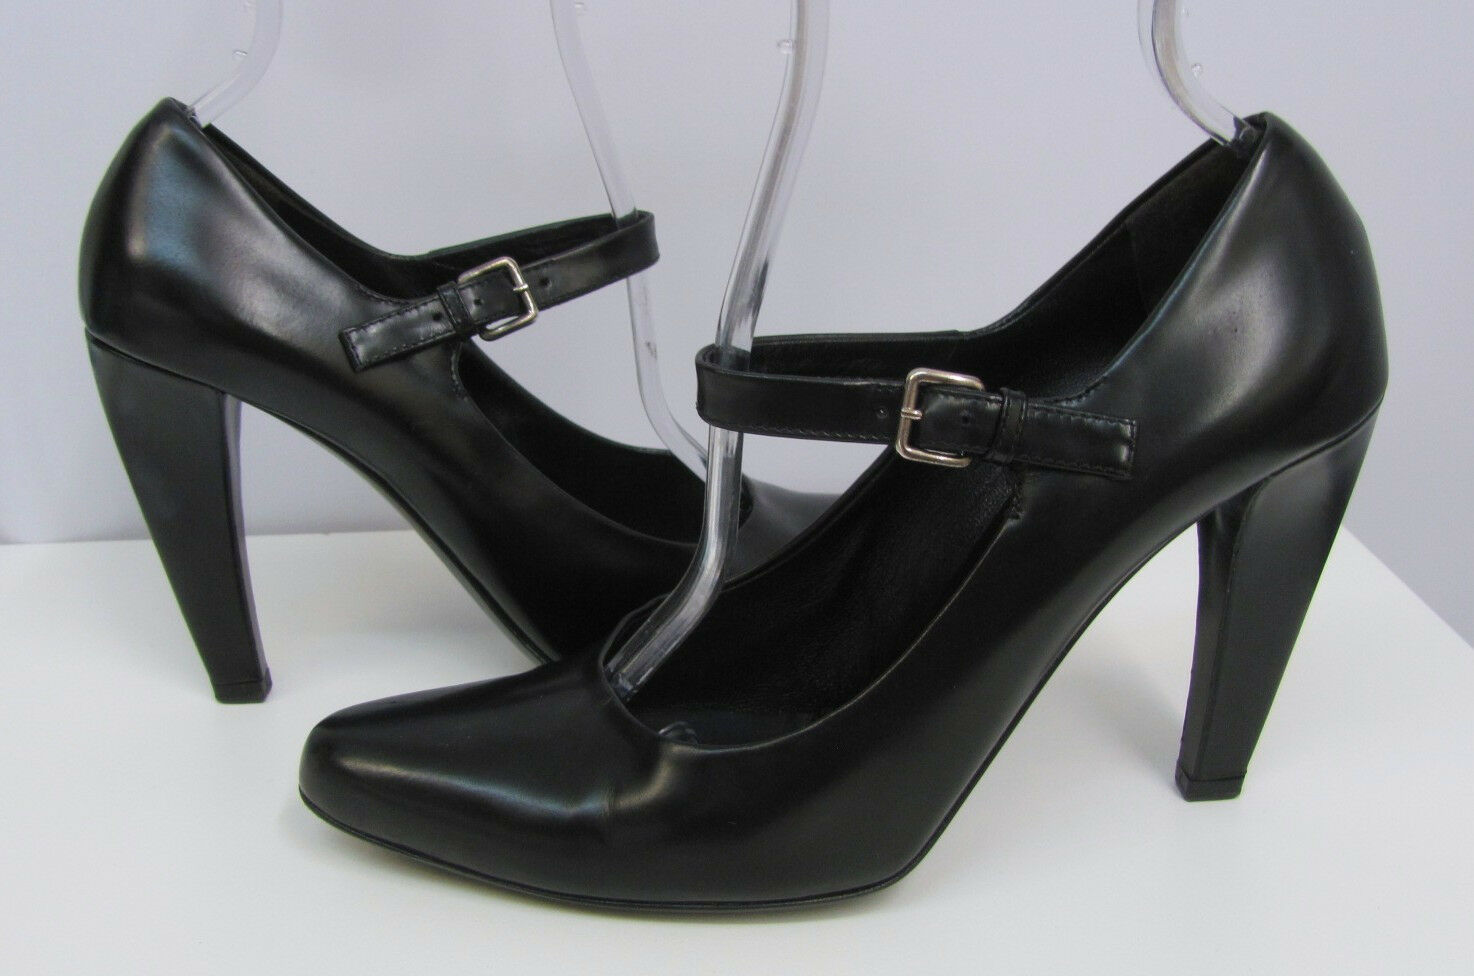 PRADA MARY JANES SHOES BLACK LEATHER GREAT SEXY STYLE SIZE 39 1 2